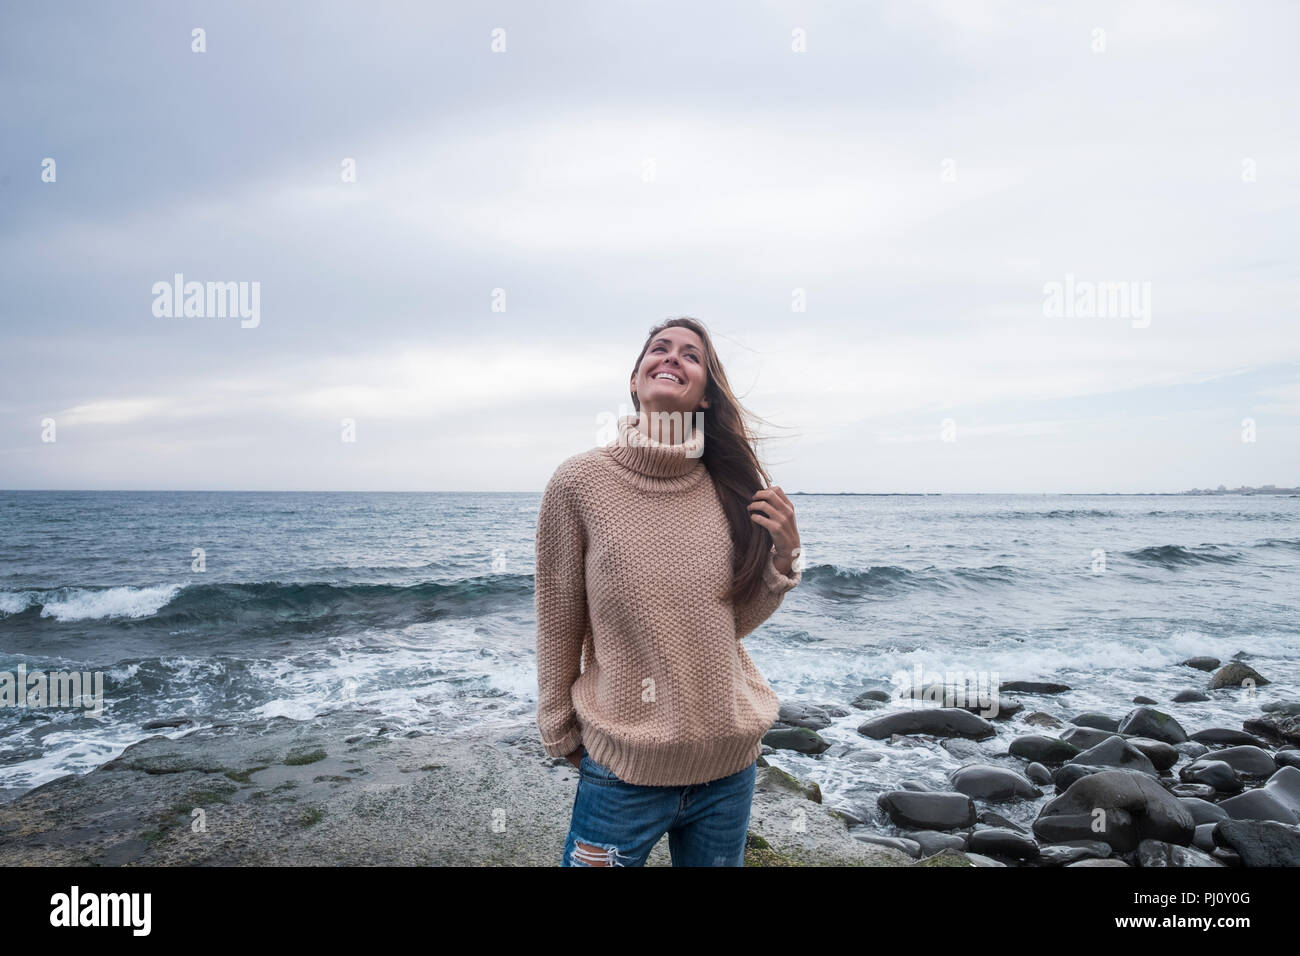 cheerful babe standing at the beach on a wild rock with waves and blue water horizon in the background. freedom lifestyle concept for people love trav - Stock Image